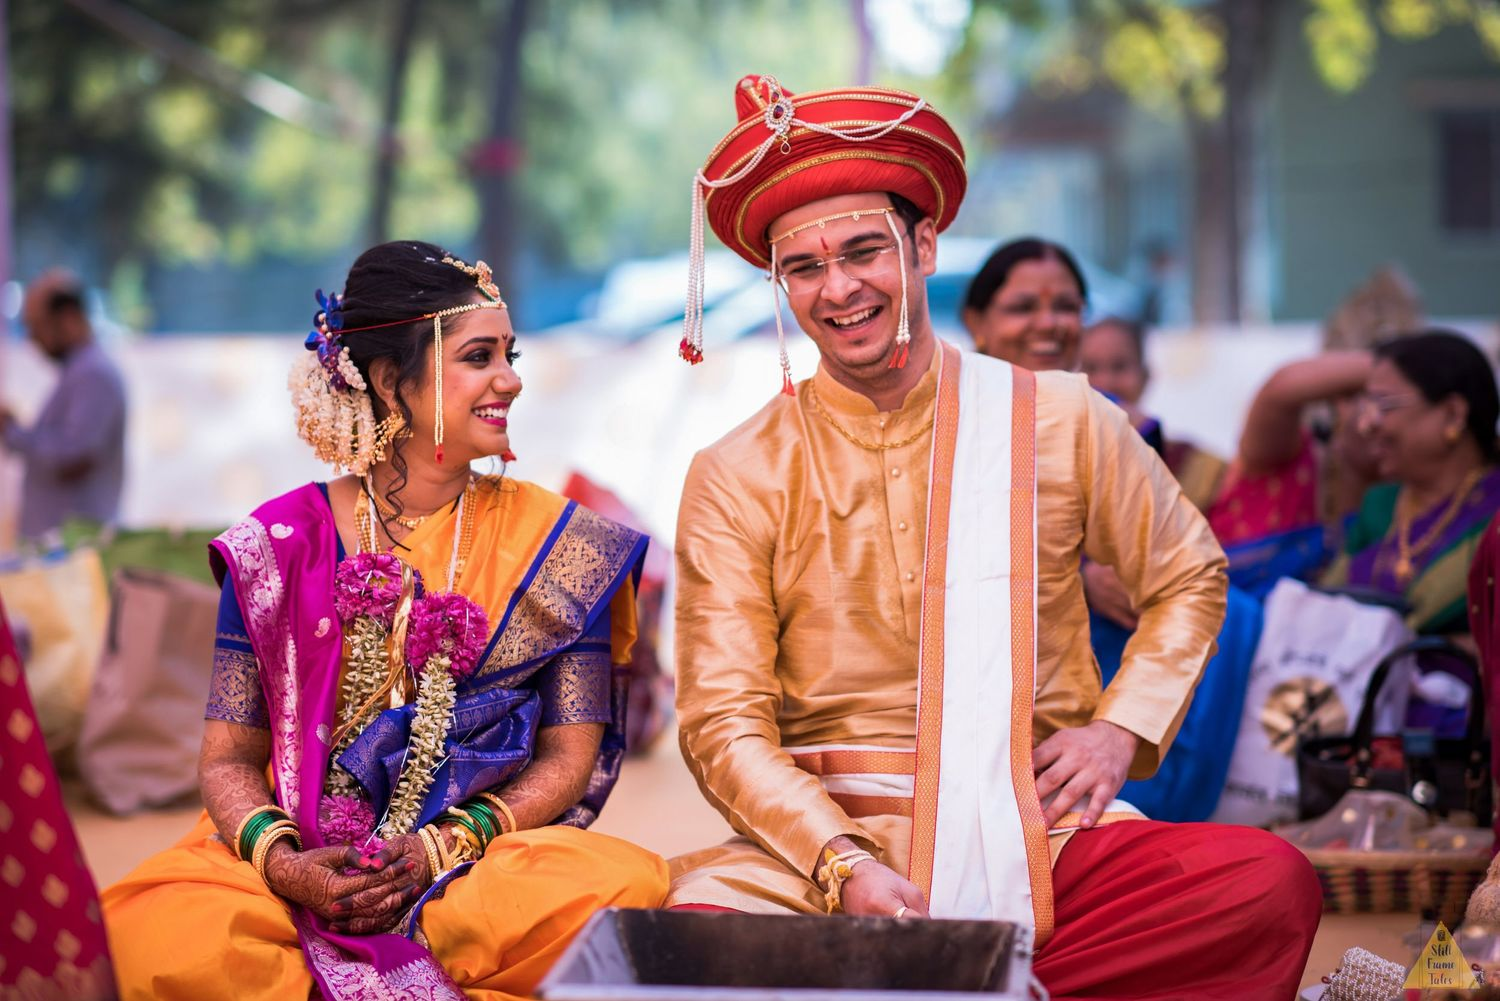 Bride and groom sharing a candid moment during wedding day rituals